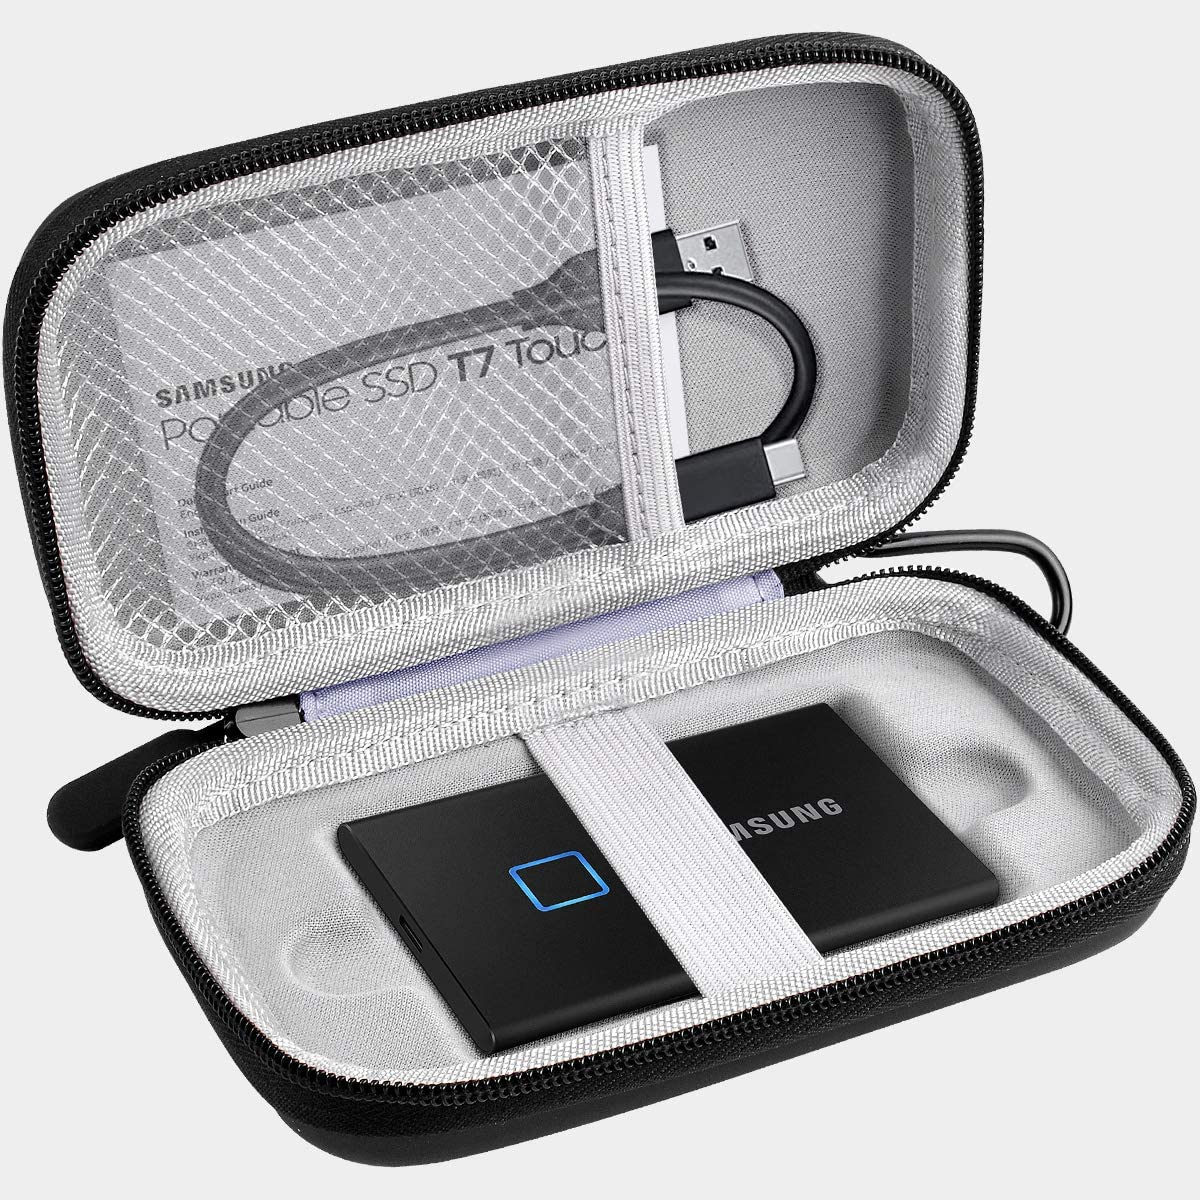 Case For Samsung T7 Touch T7 Portable Ssd 1tb 2tb Computers Accessories